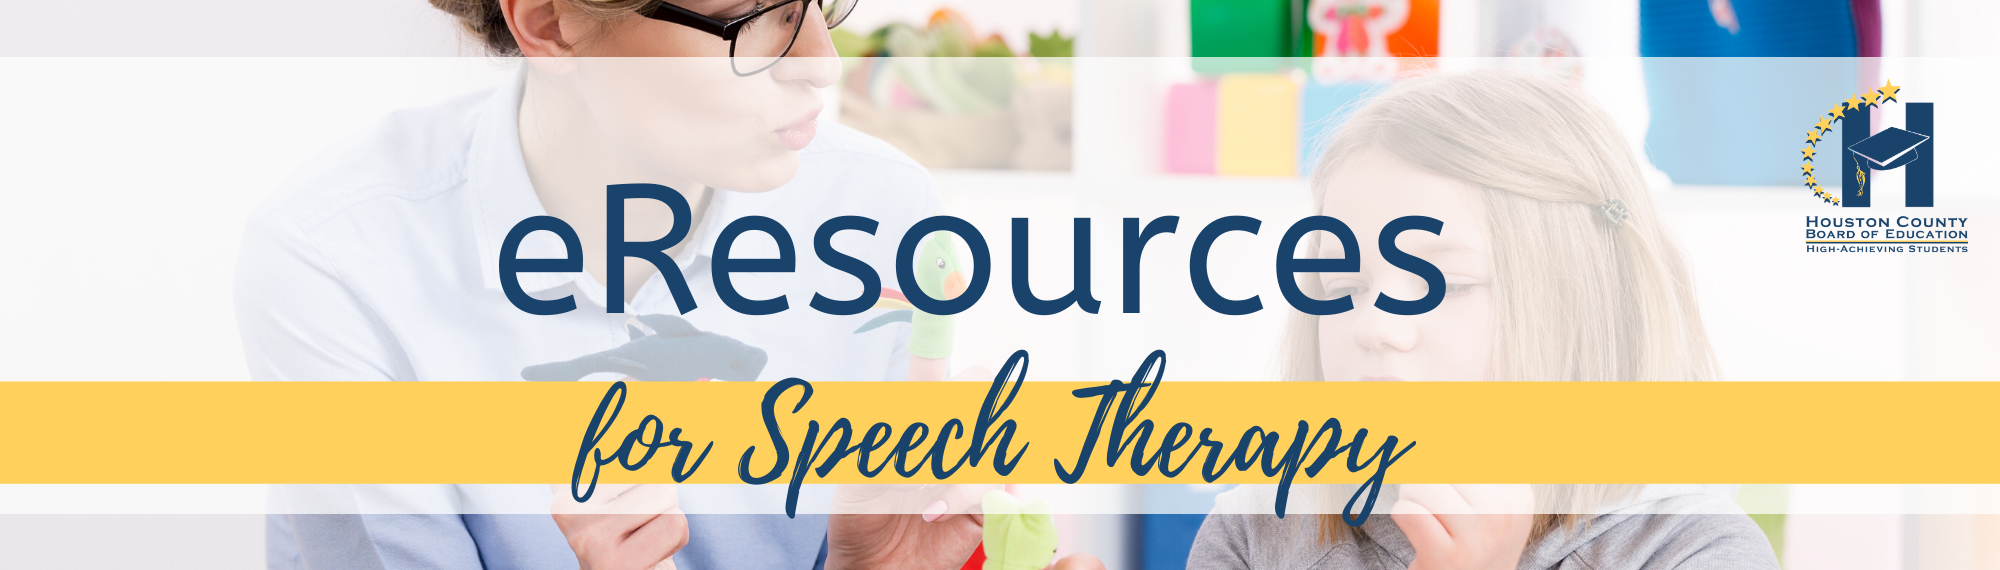 eResources for Speech Therapy